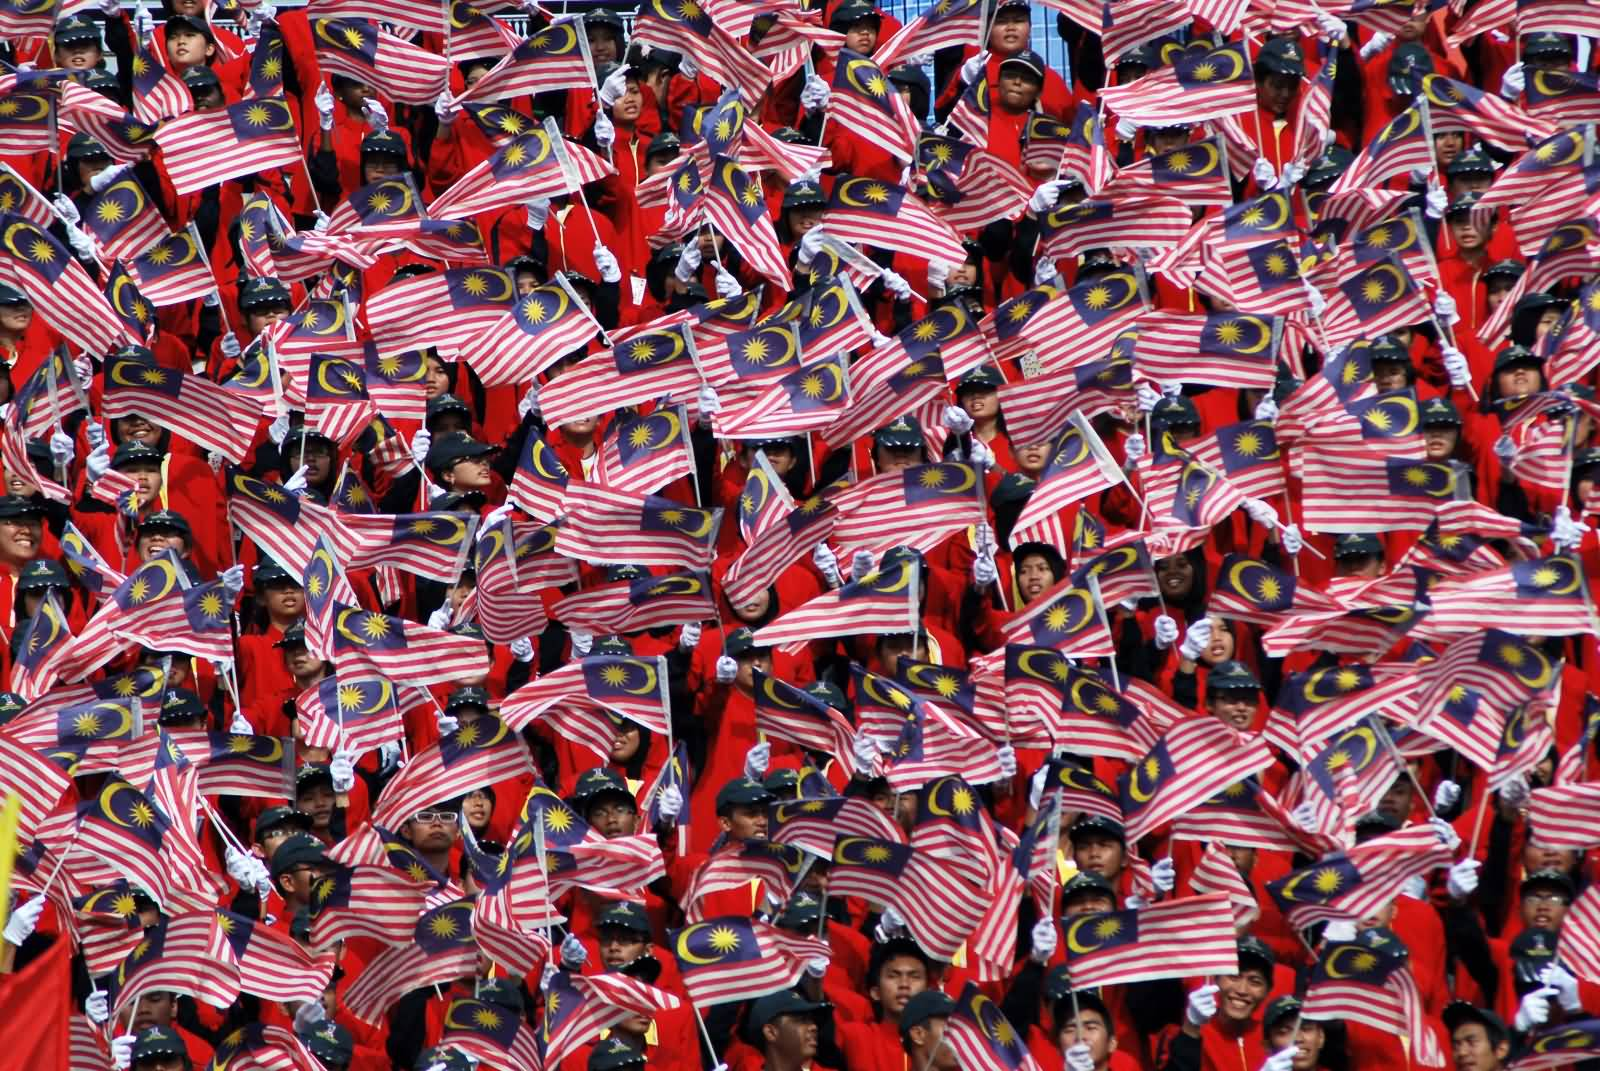 Malaysians-Waves-Their-National-Flags-During-Malaysia-Day-Celebration